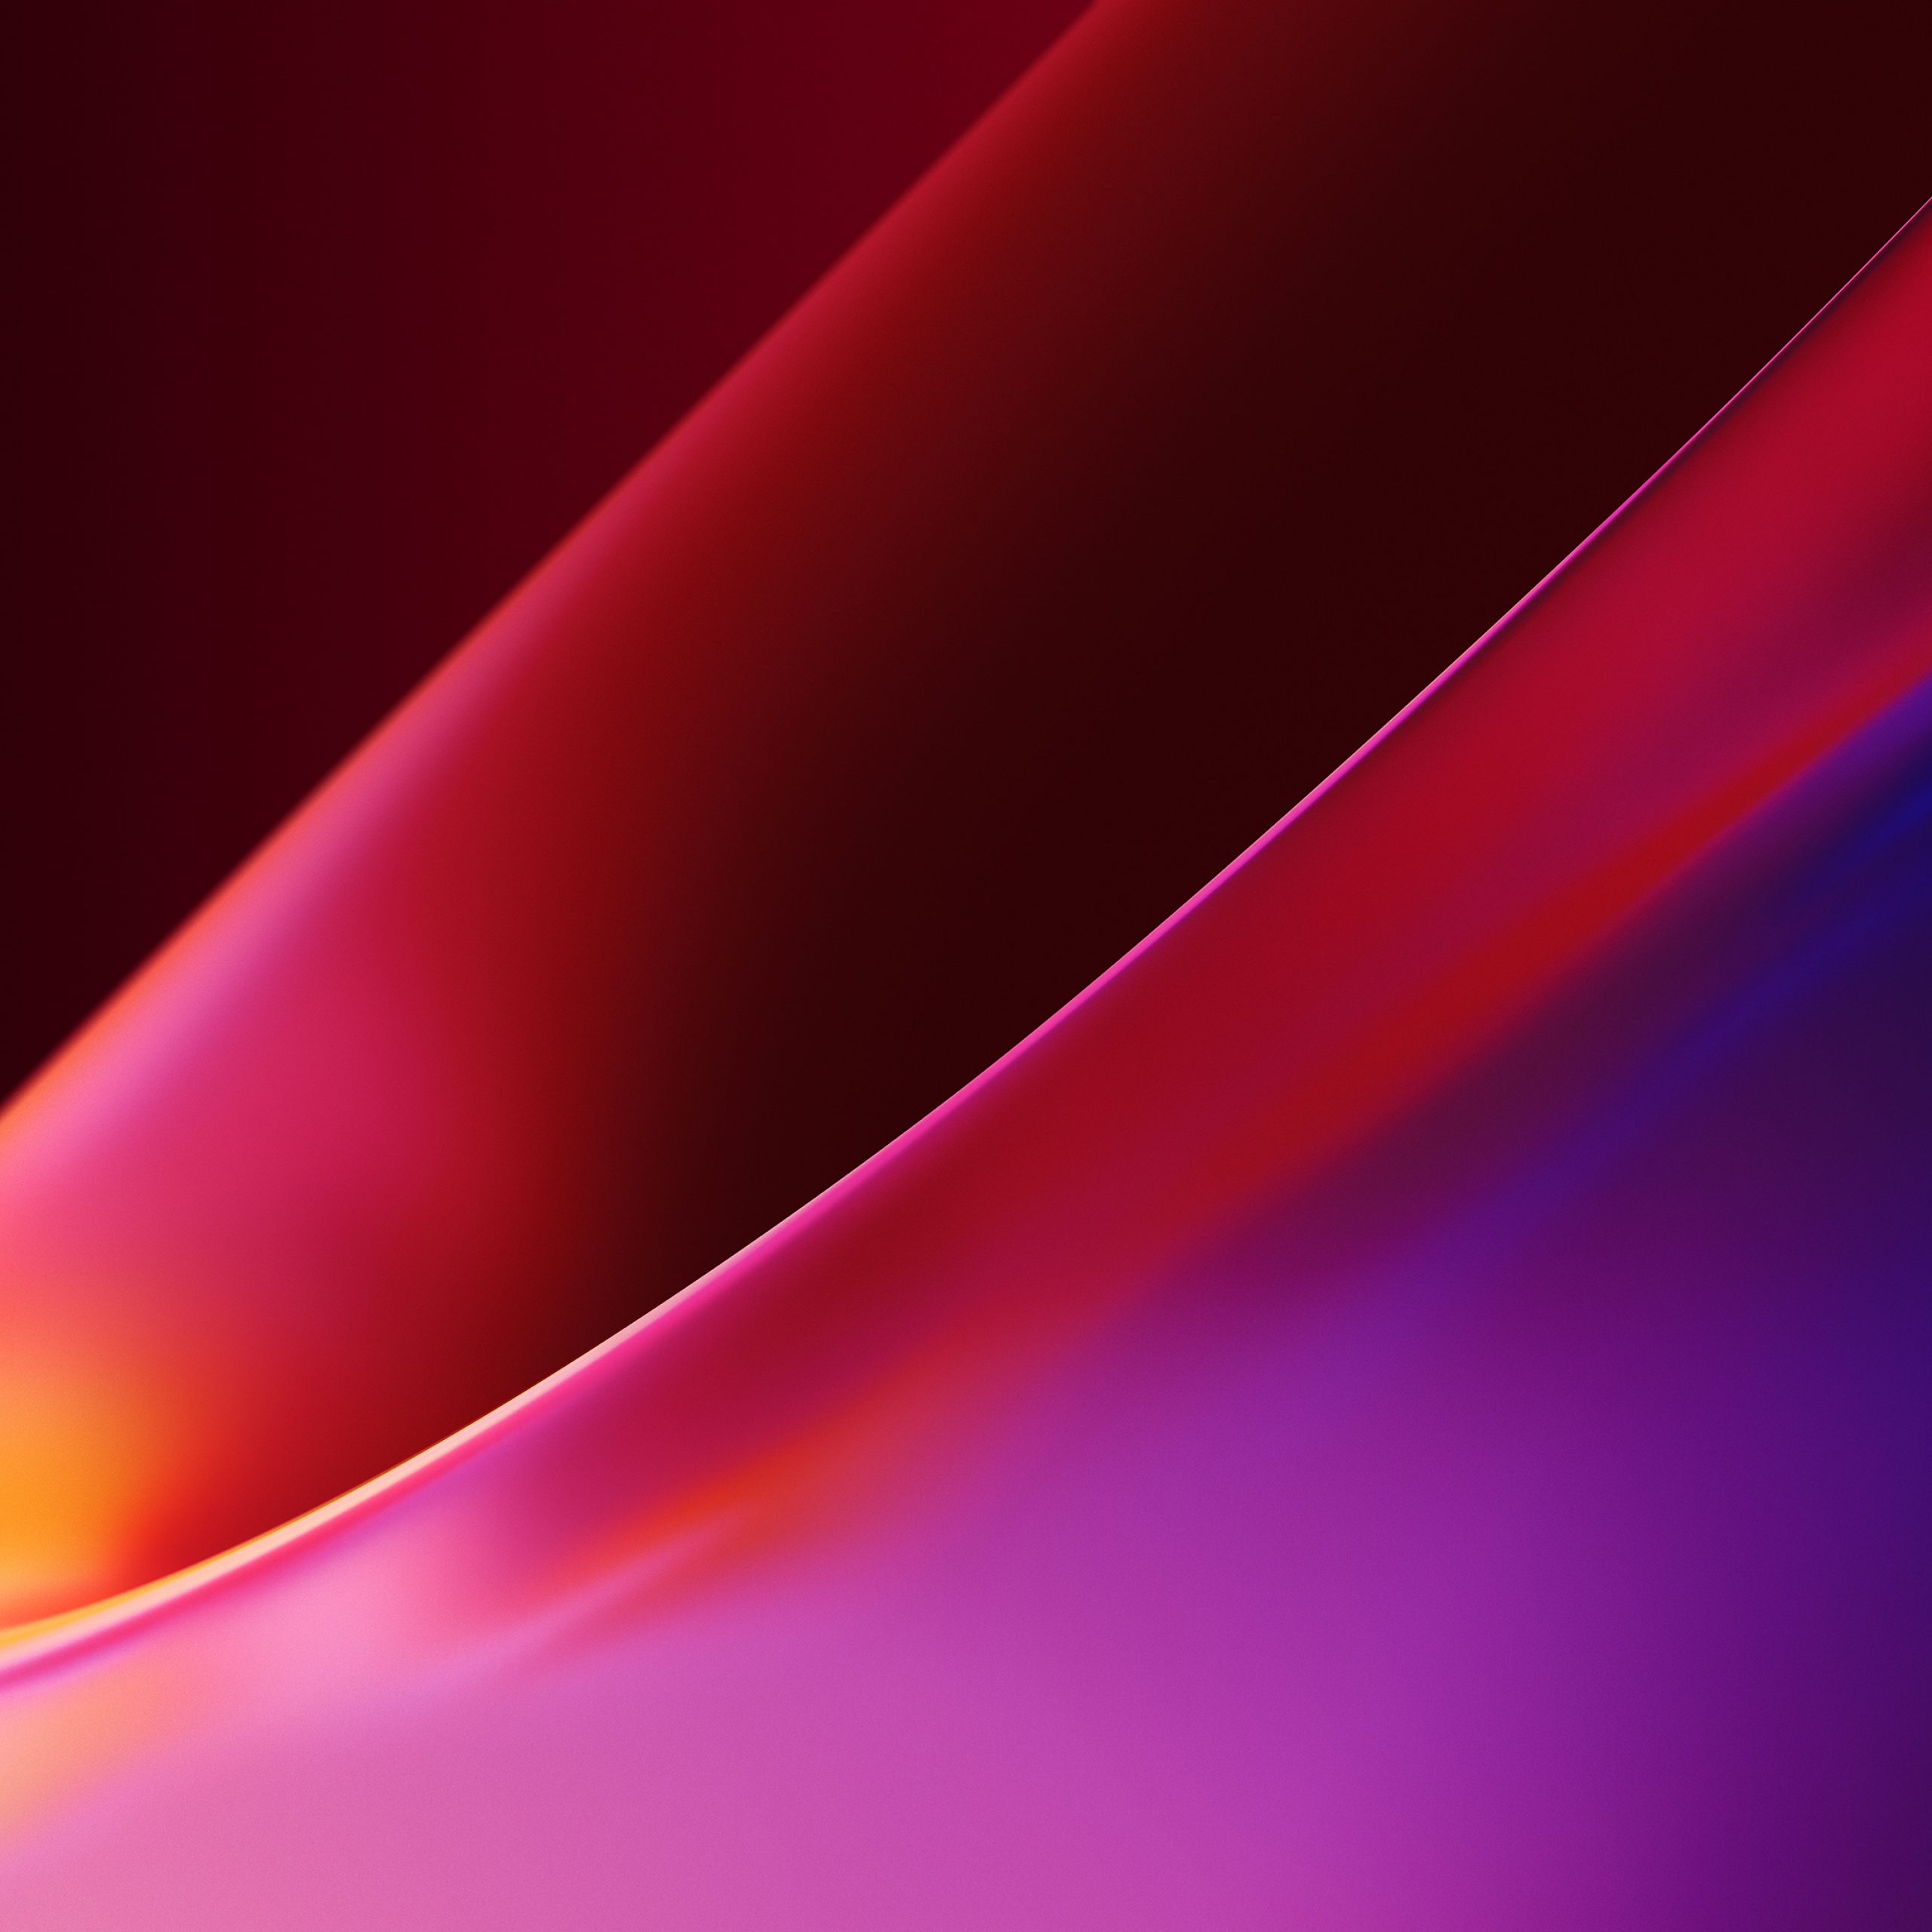 4K Wallpaper OnePlus 8 Pro, Stock, 2020, Abstract, #513